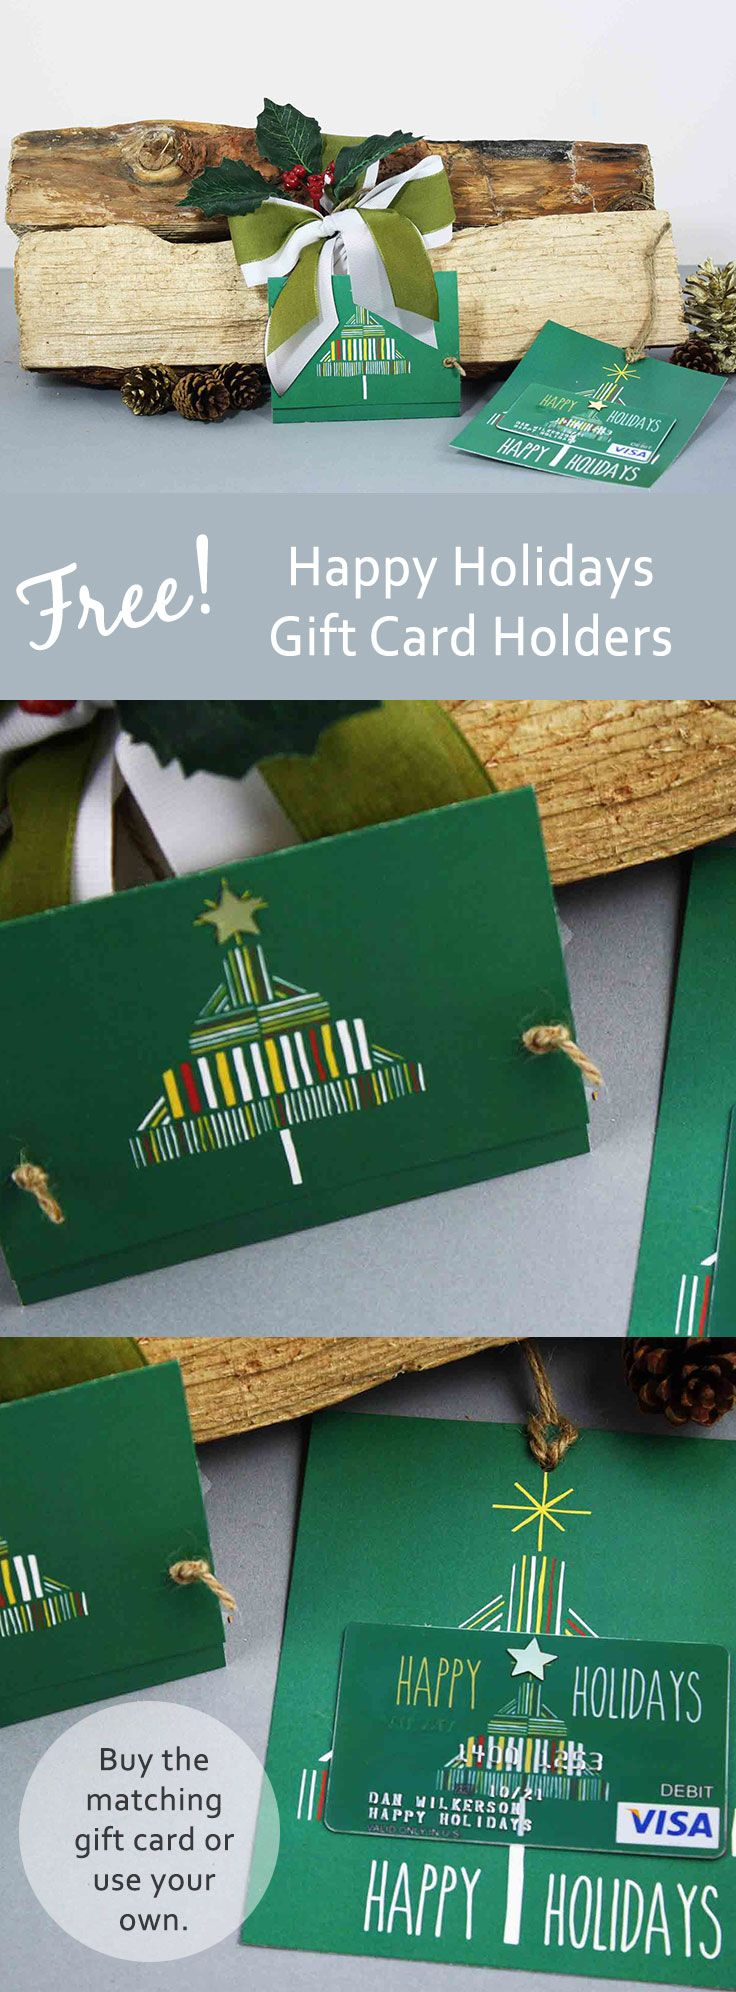 Free Printable Happy Holidays Gift Card Holder Giftcards Com Holiday Gift Card Holders Holiday Gift Card Happy Holiday Gifts